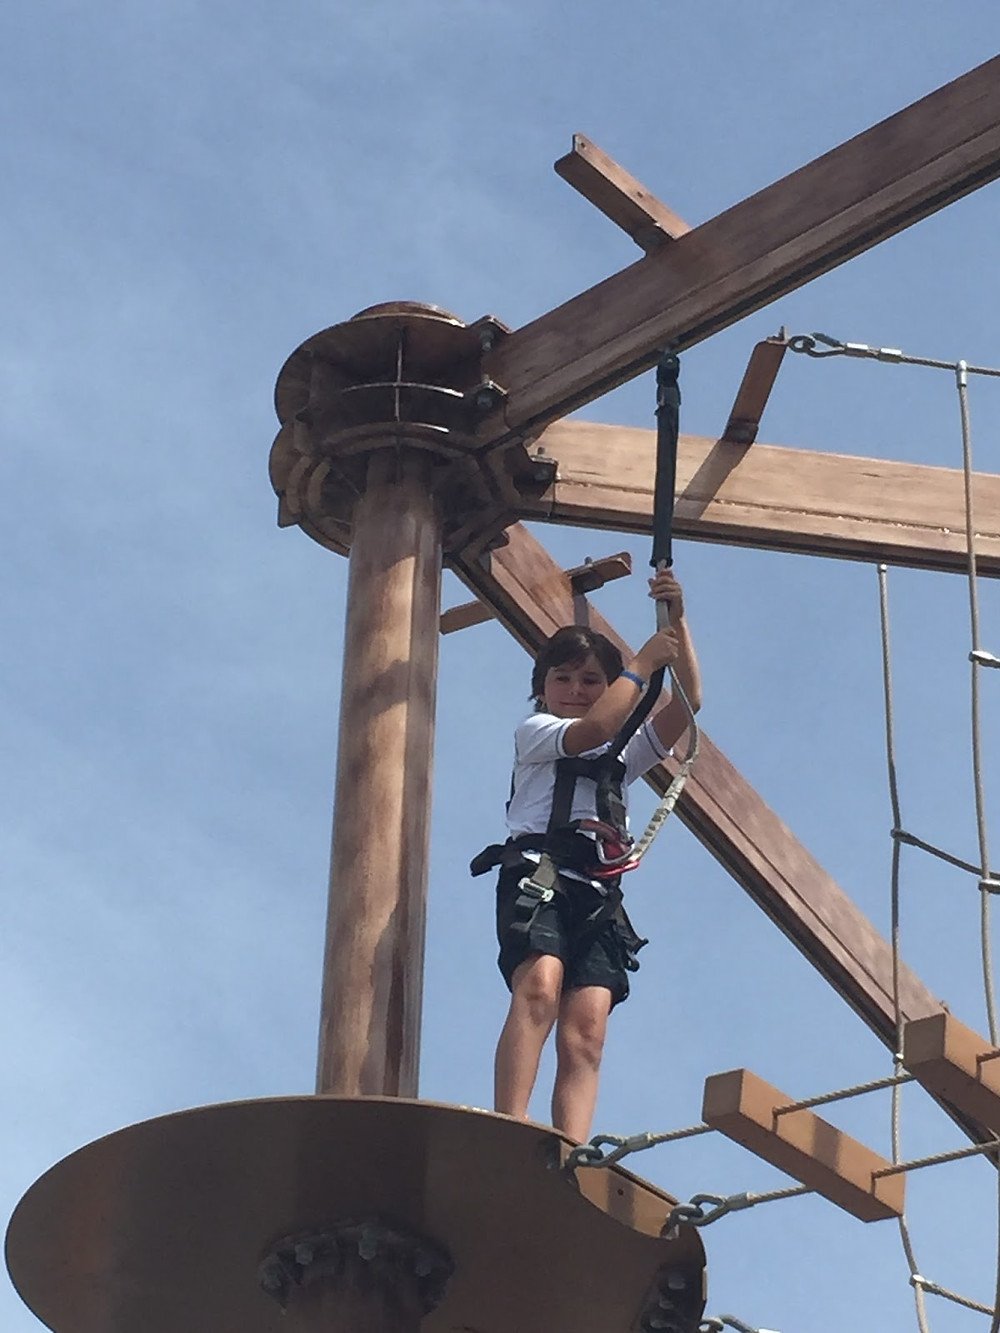 B on the ropes course